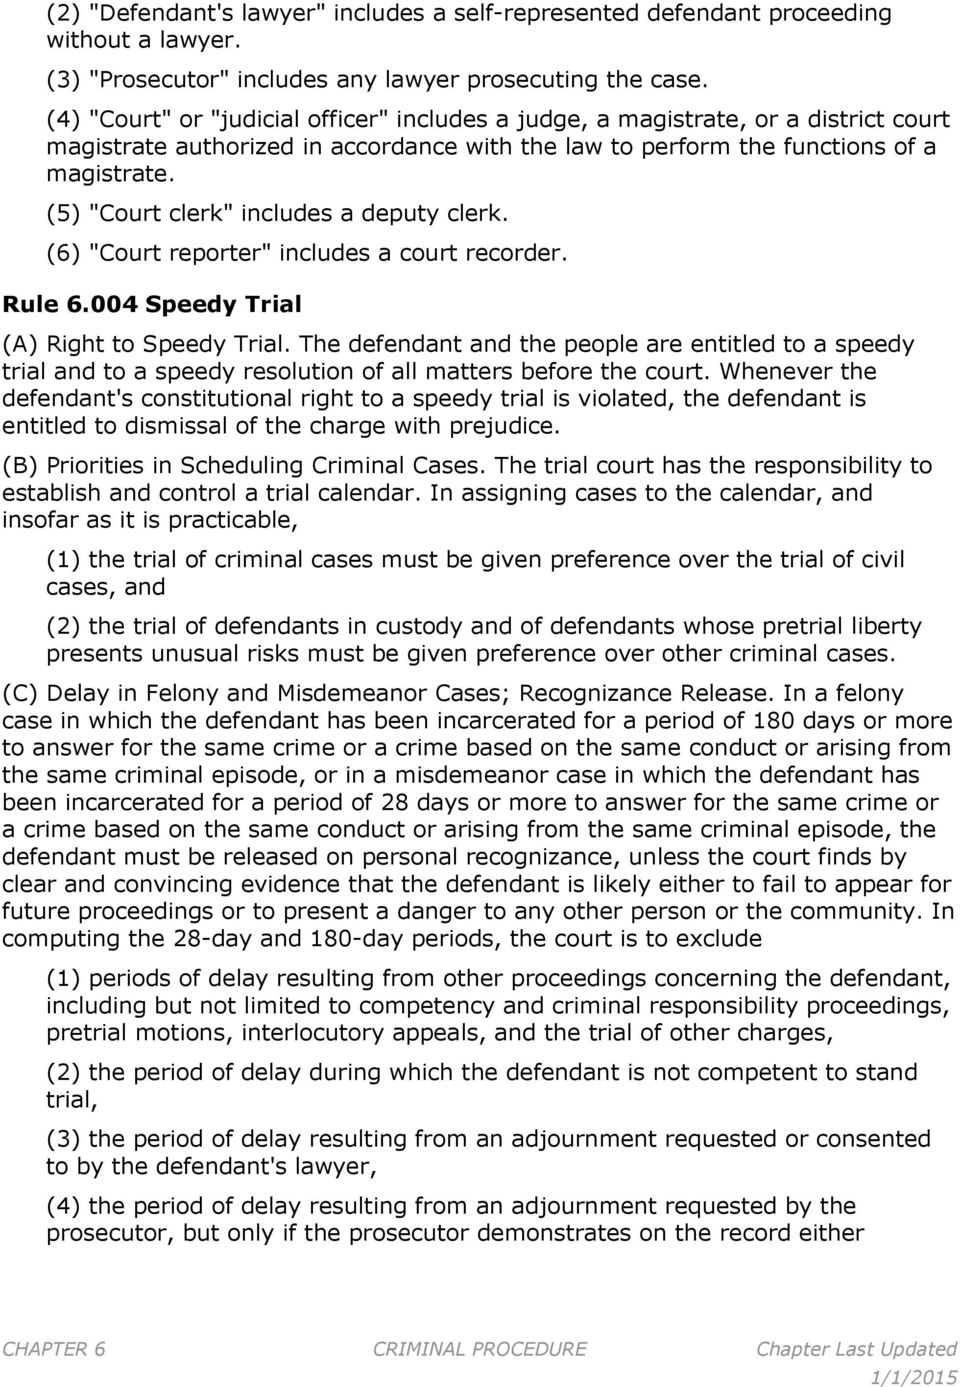 "(5) ""Court clerk"" includes a deputy clerk. (6) ""Court reporter"" includes a court recorder. Rule 6.004 Speedy Trial (A) Right to Speedy Trial."